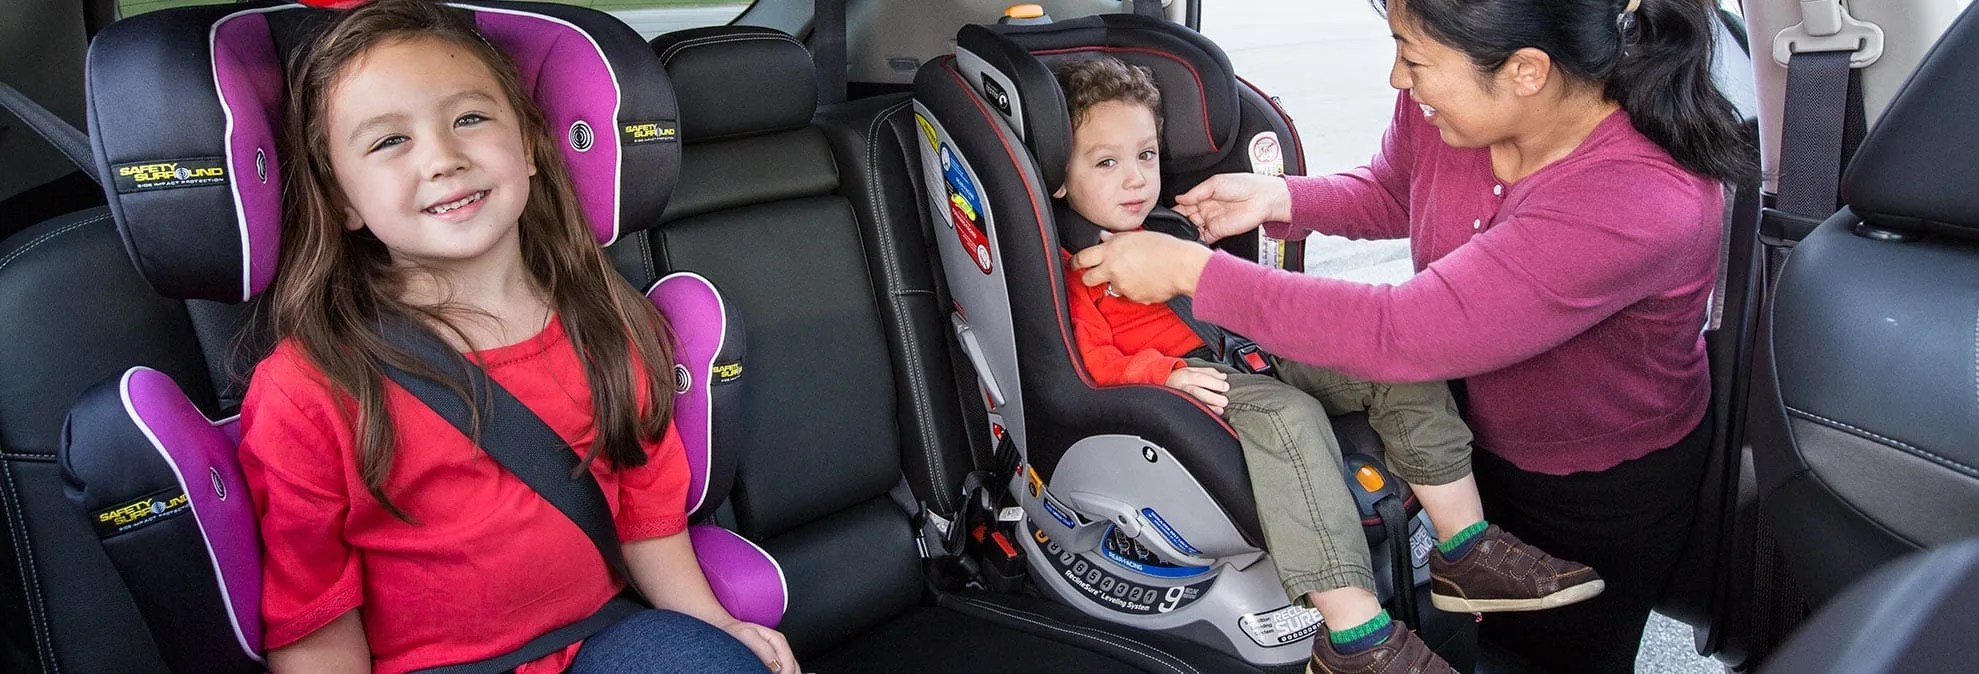 Baby Car Seat Fitting Service Avoid Common Car Seat Installation Mistakes Consumer Reports